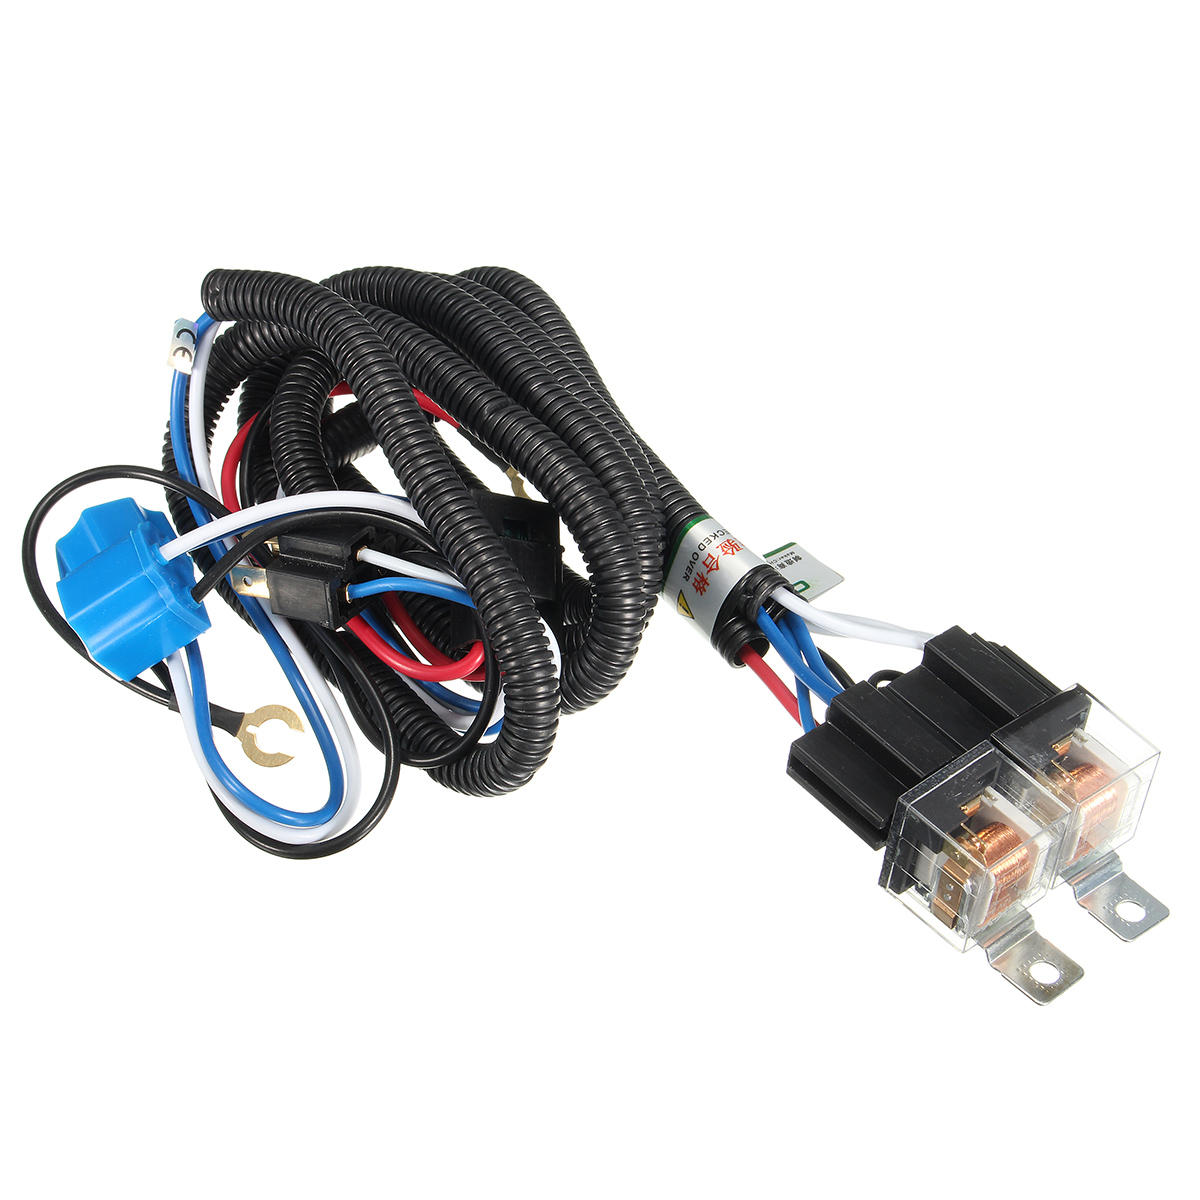 hight resolution of 12v 7inch h4 headlight 2 headlamp relay wiring harness light socket plug connector cod